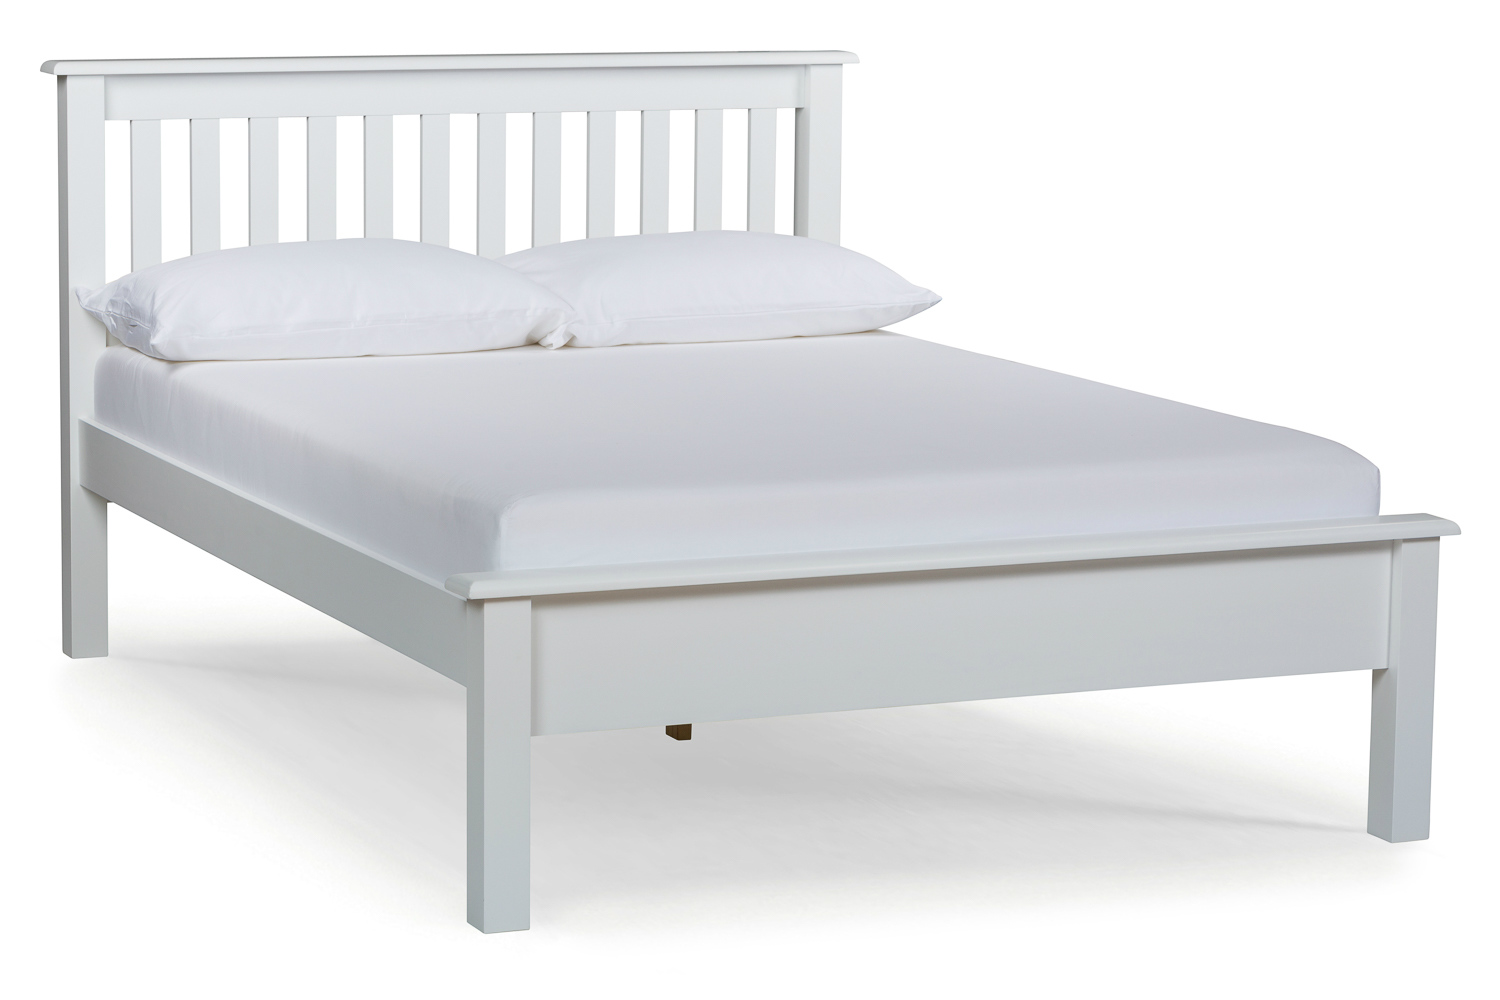 double bed frames shaker double bed frame | 4ft6 | white ... YICIHTU